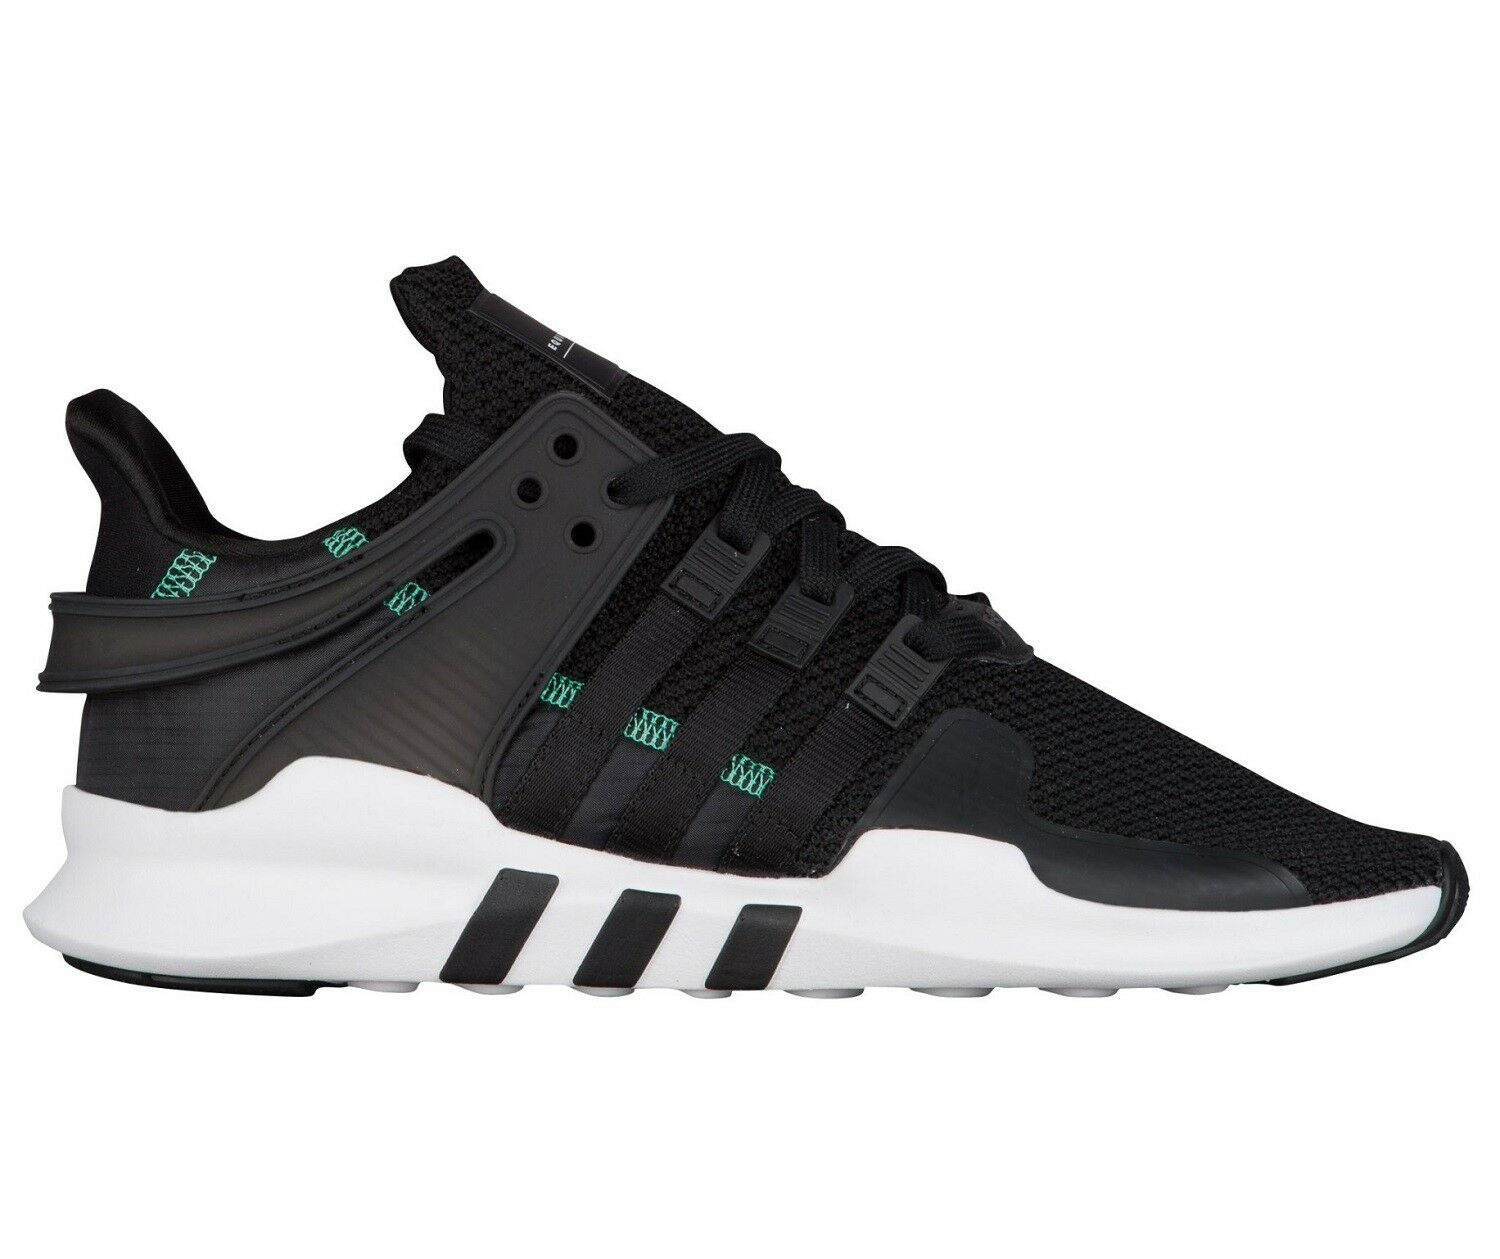 Adidas EQT Support ADV Mens CQ3006 Black White Knit Running shoes Size 12